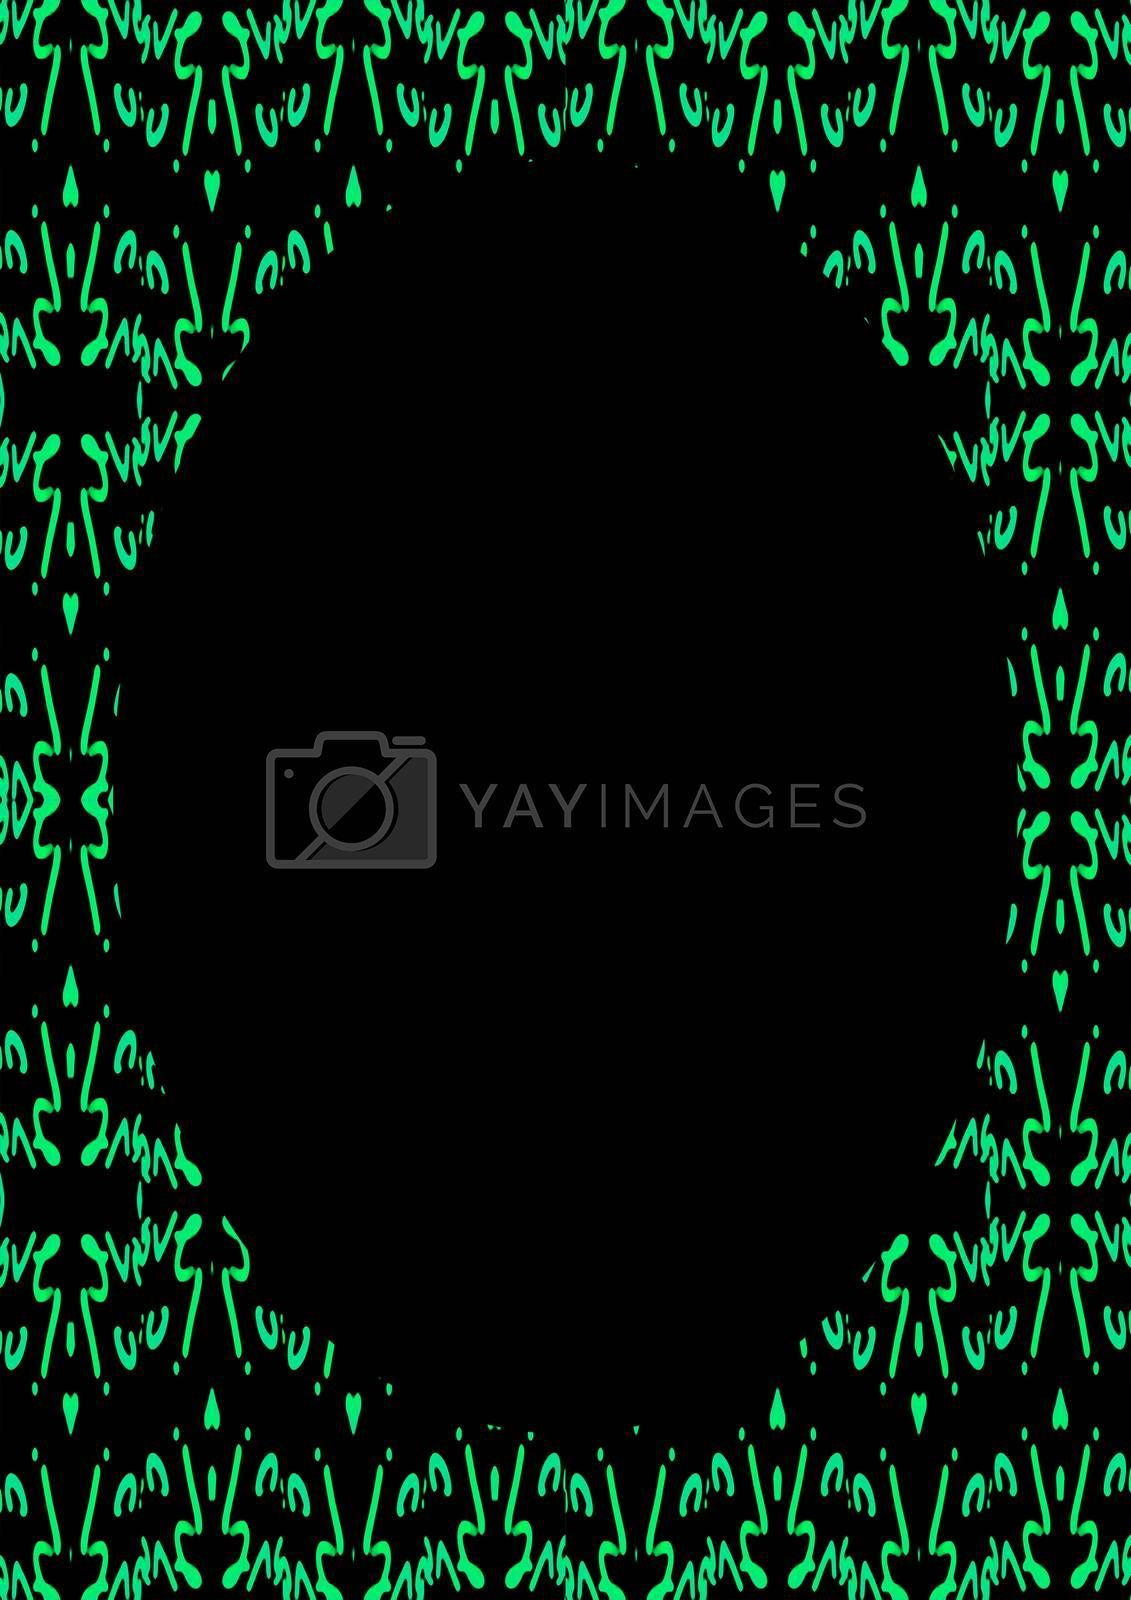 Royalty free image of Black Frame with Decorated Patterned Rounded Borders by DanFLCreative